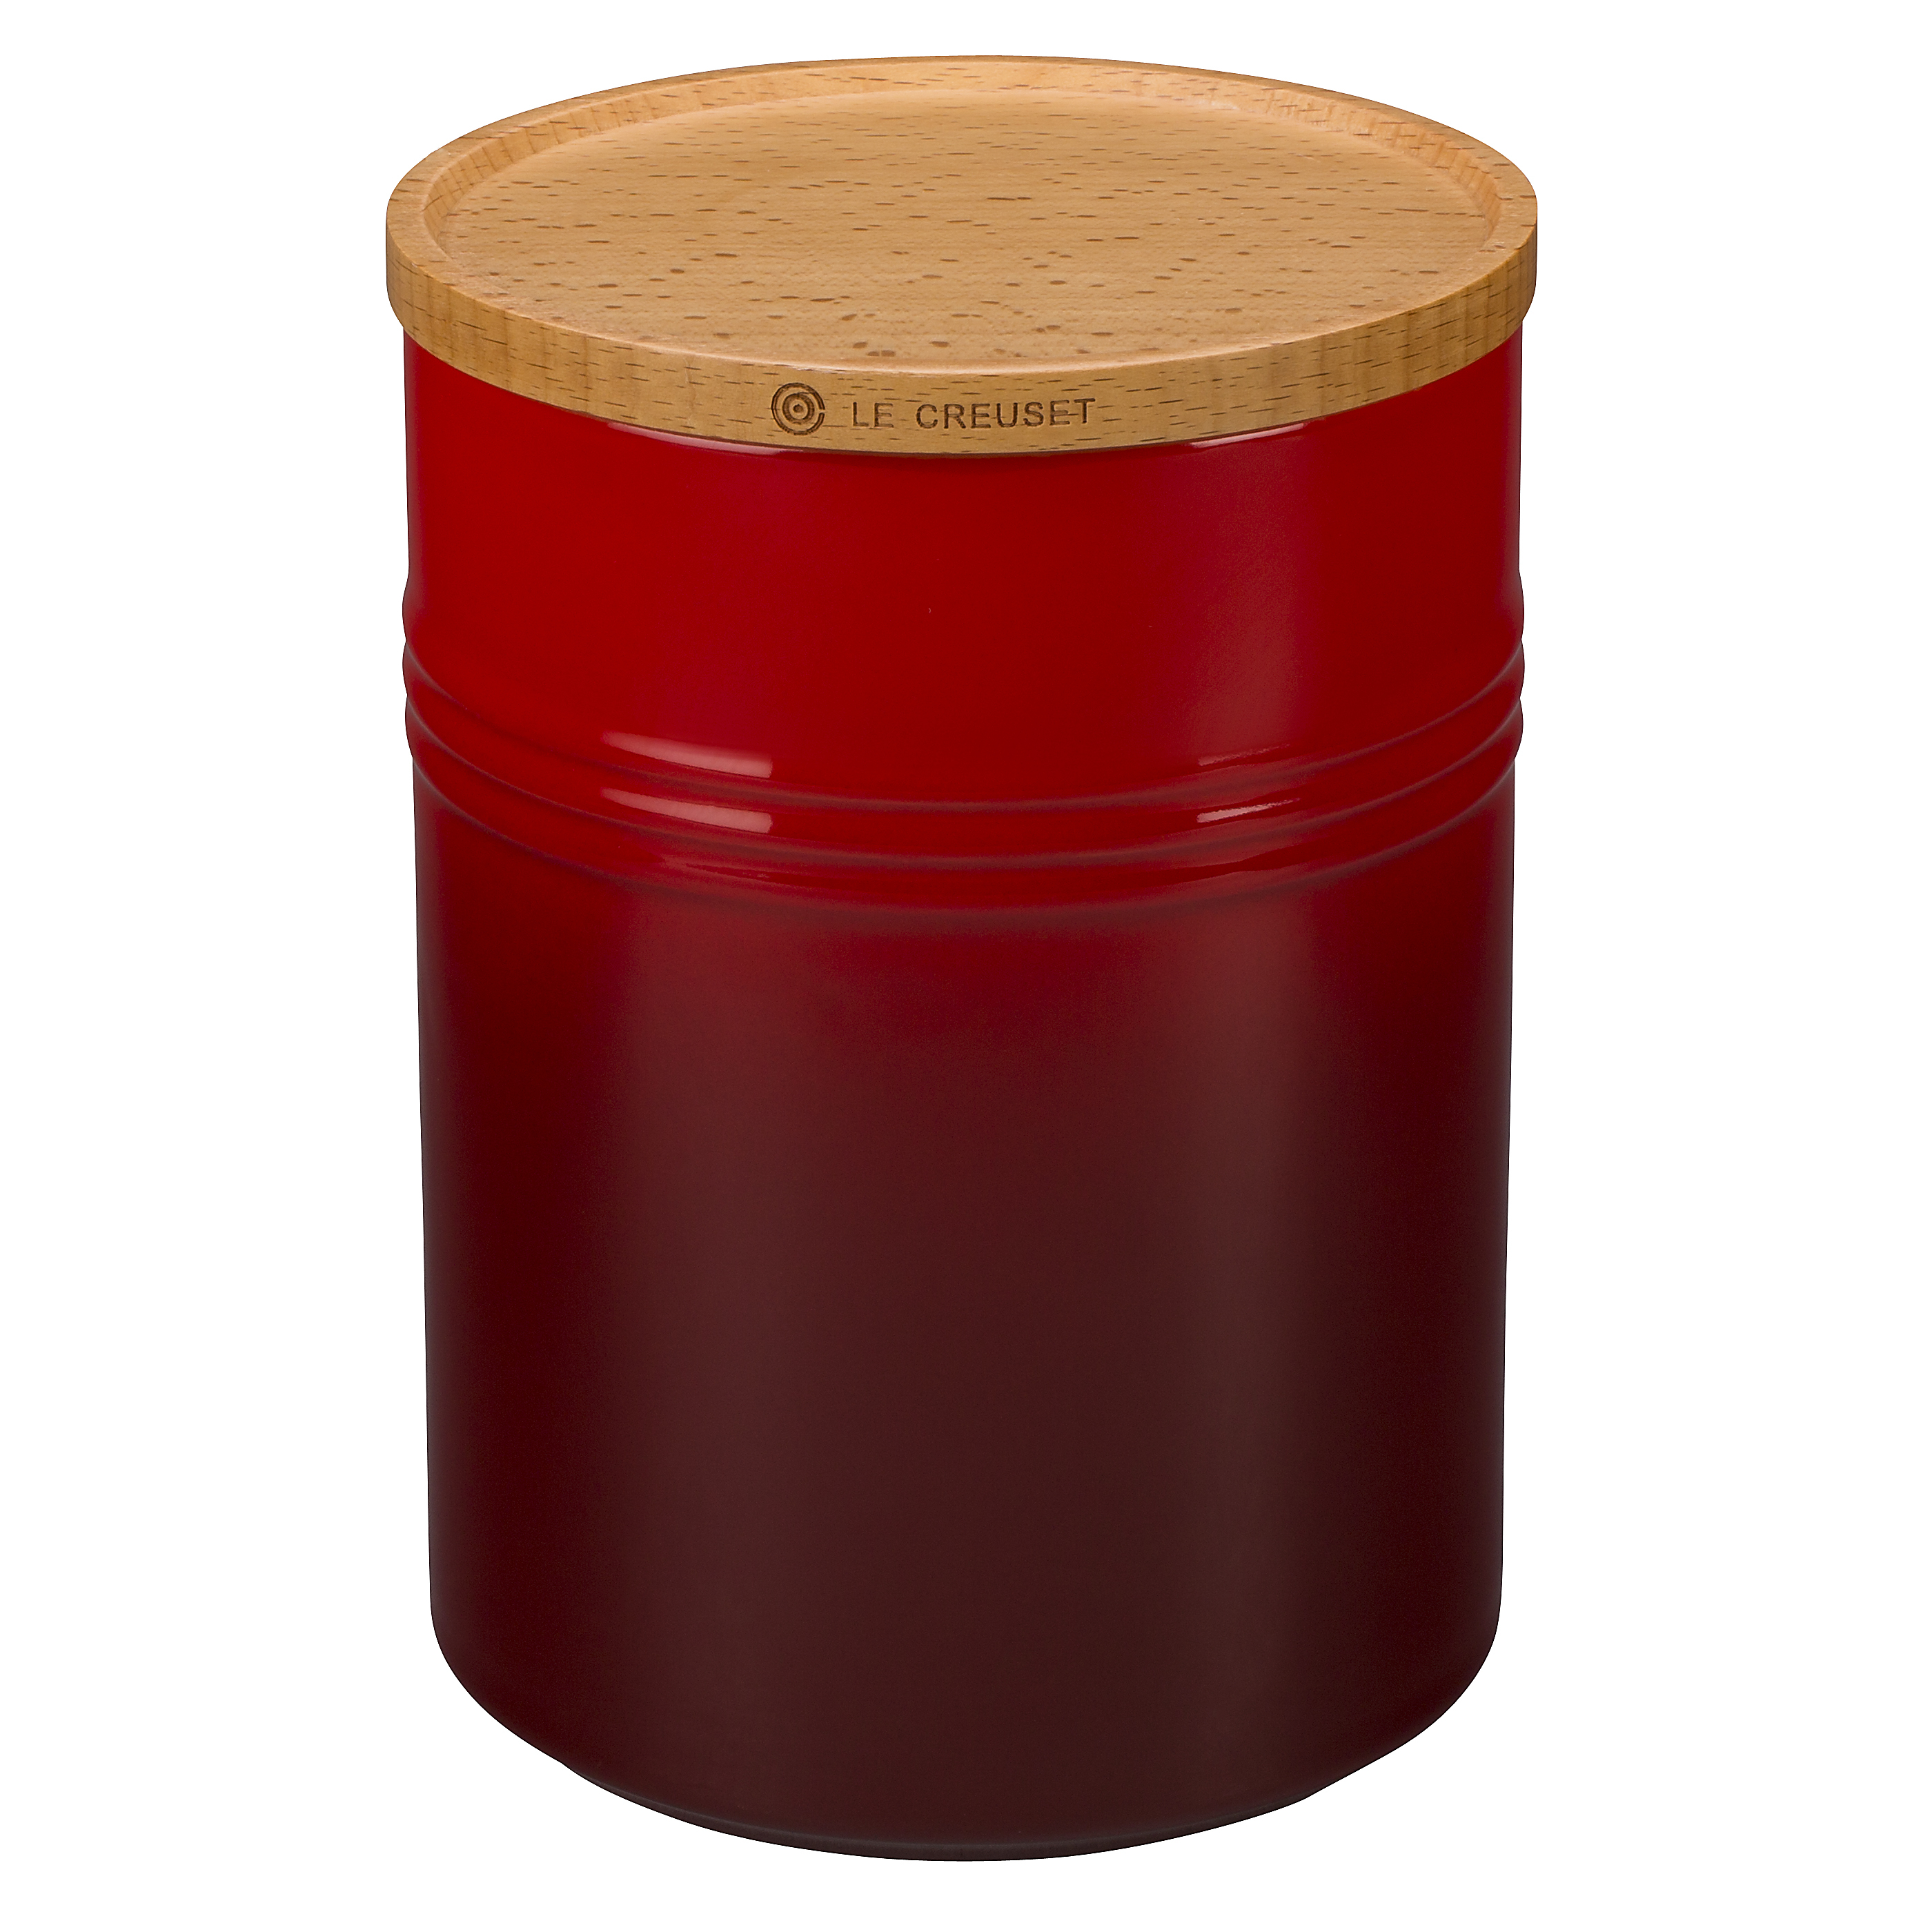 Le Creuset Cherry Stoneware 22 Ounce Canister with Wooden Lid